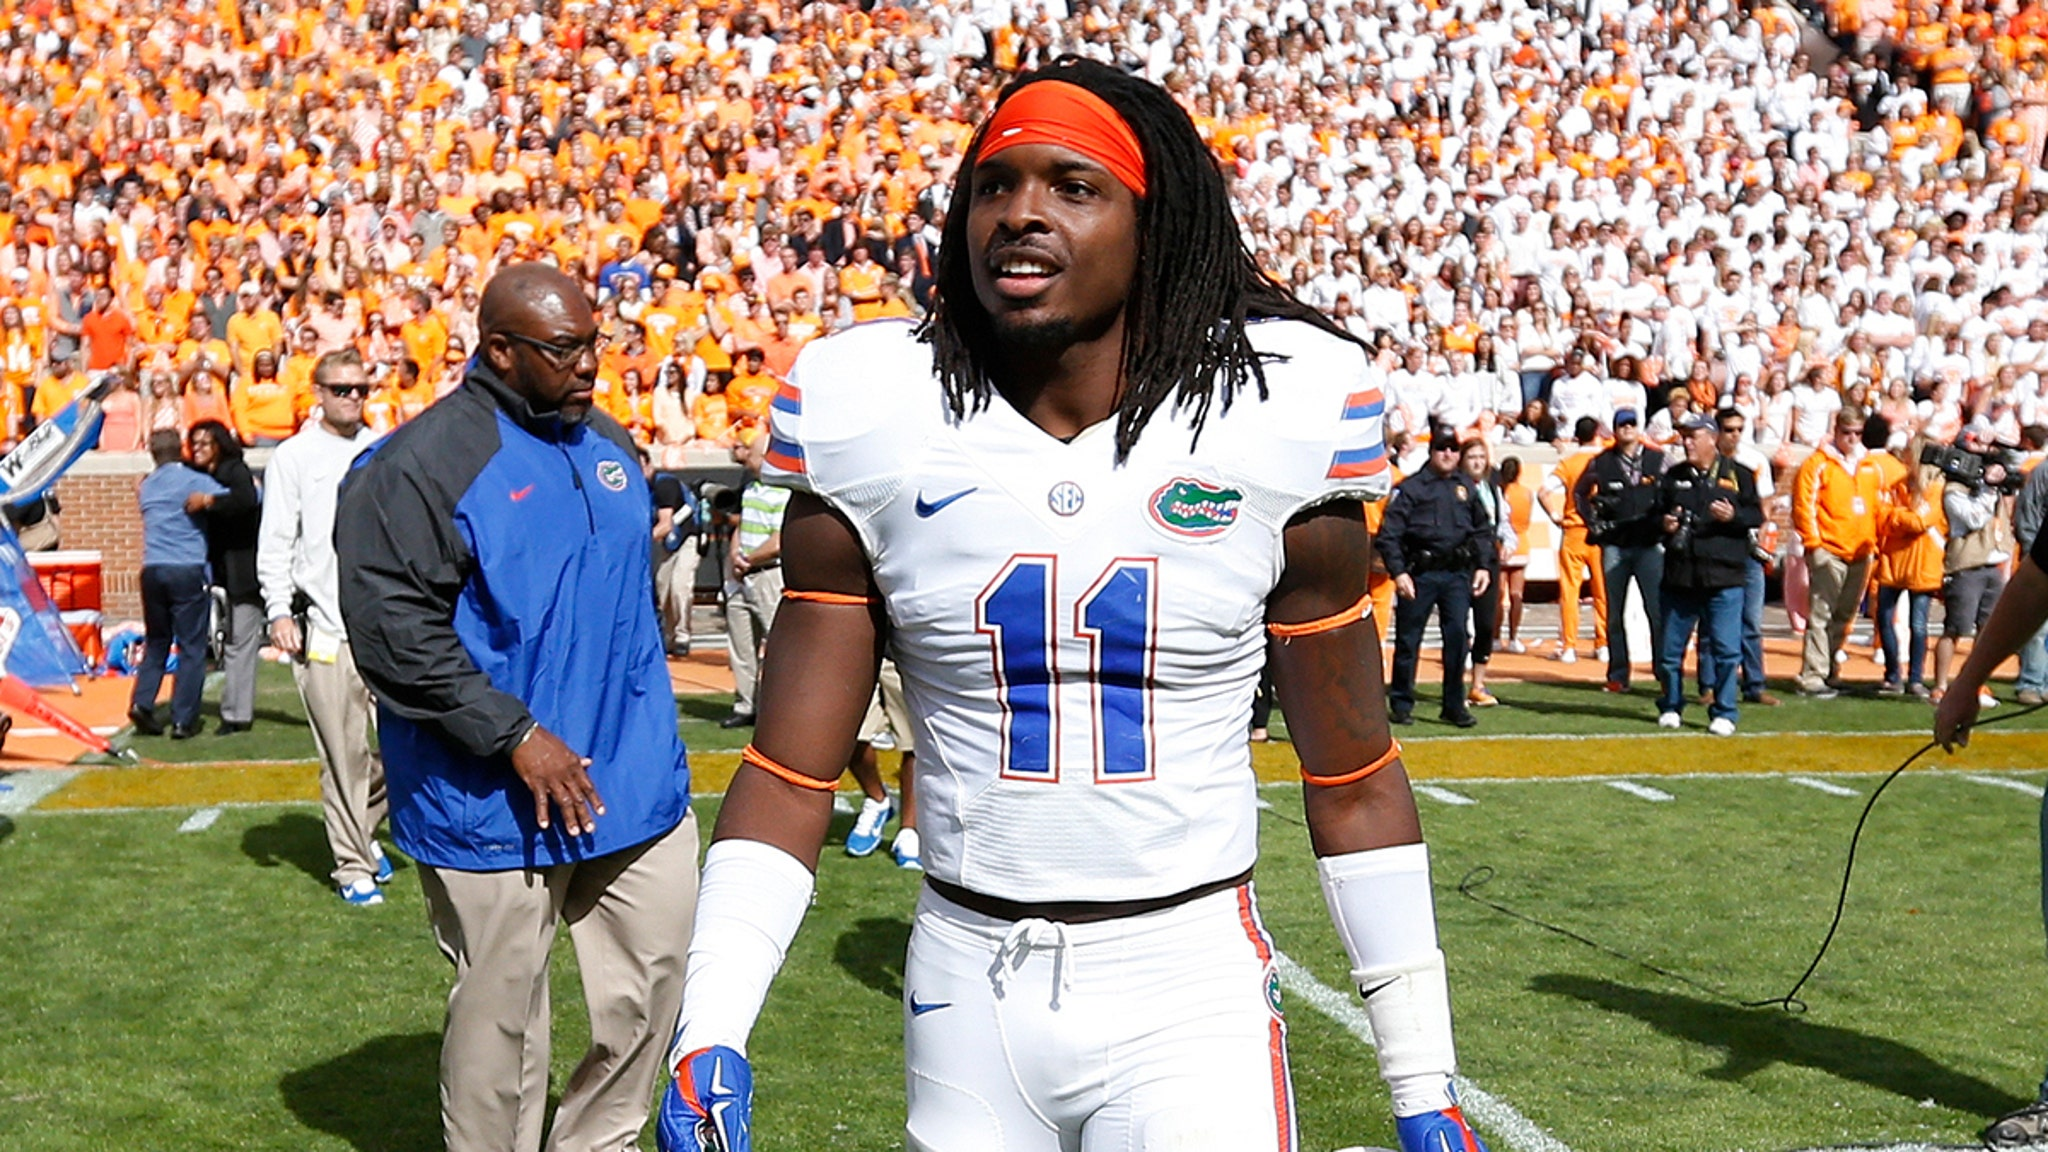 Ex-Gators Star Neiron Ball Dies at 27 After Battle with Rare Brain Condition